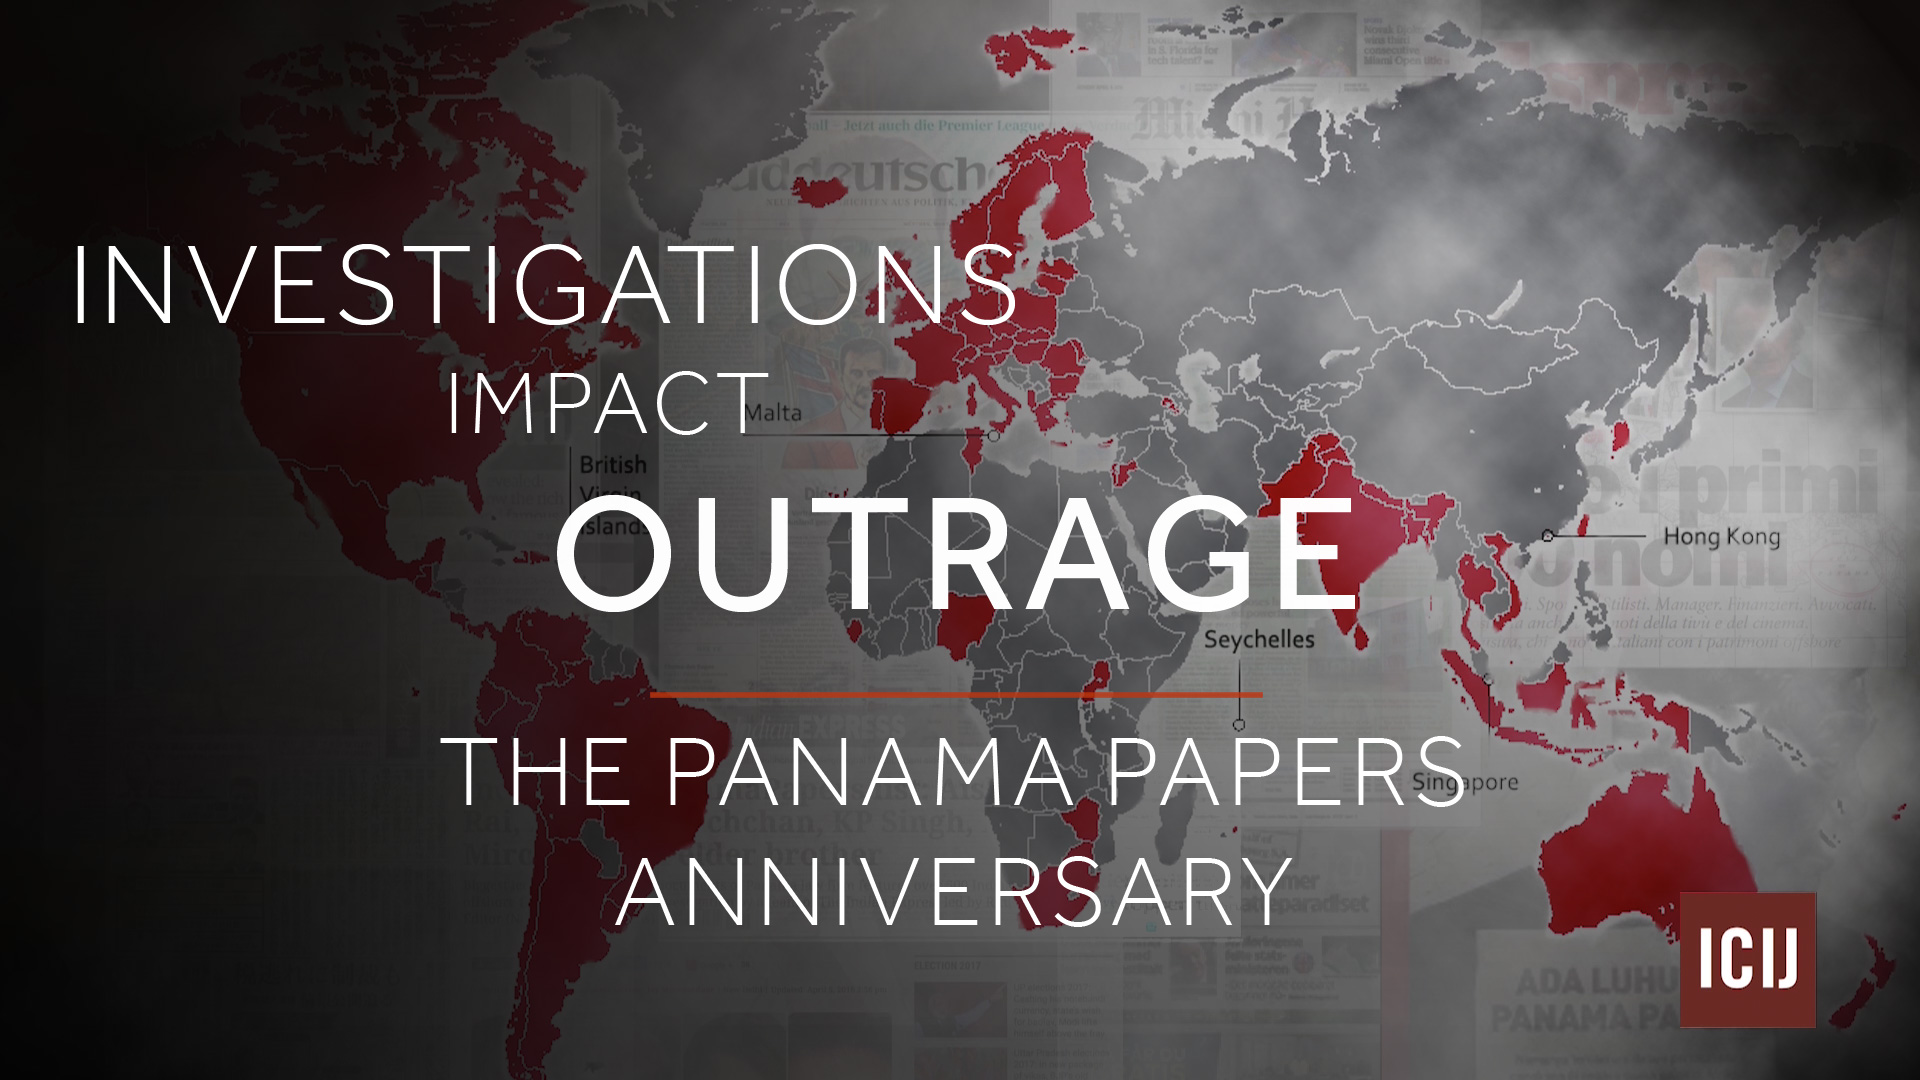 Panama Papers anniversary video